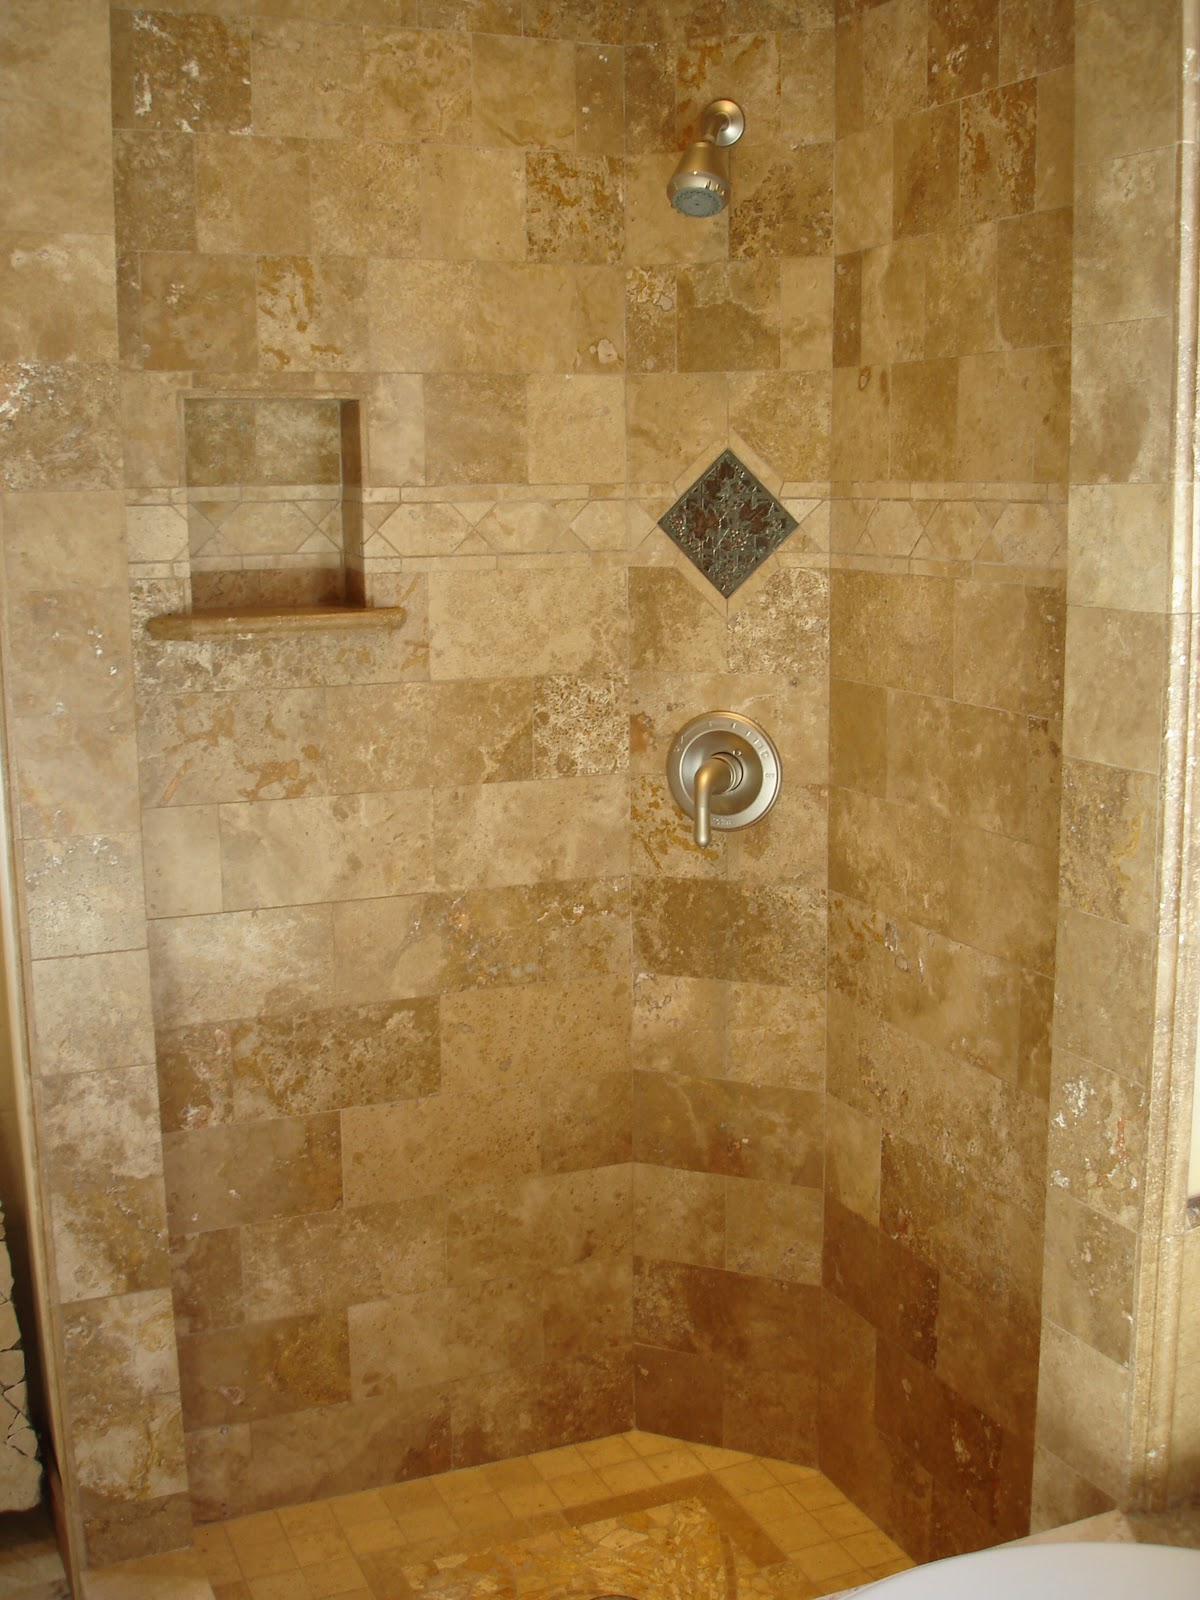 17. 20 12. Bathroom Remodeling Pictures ...